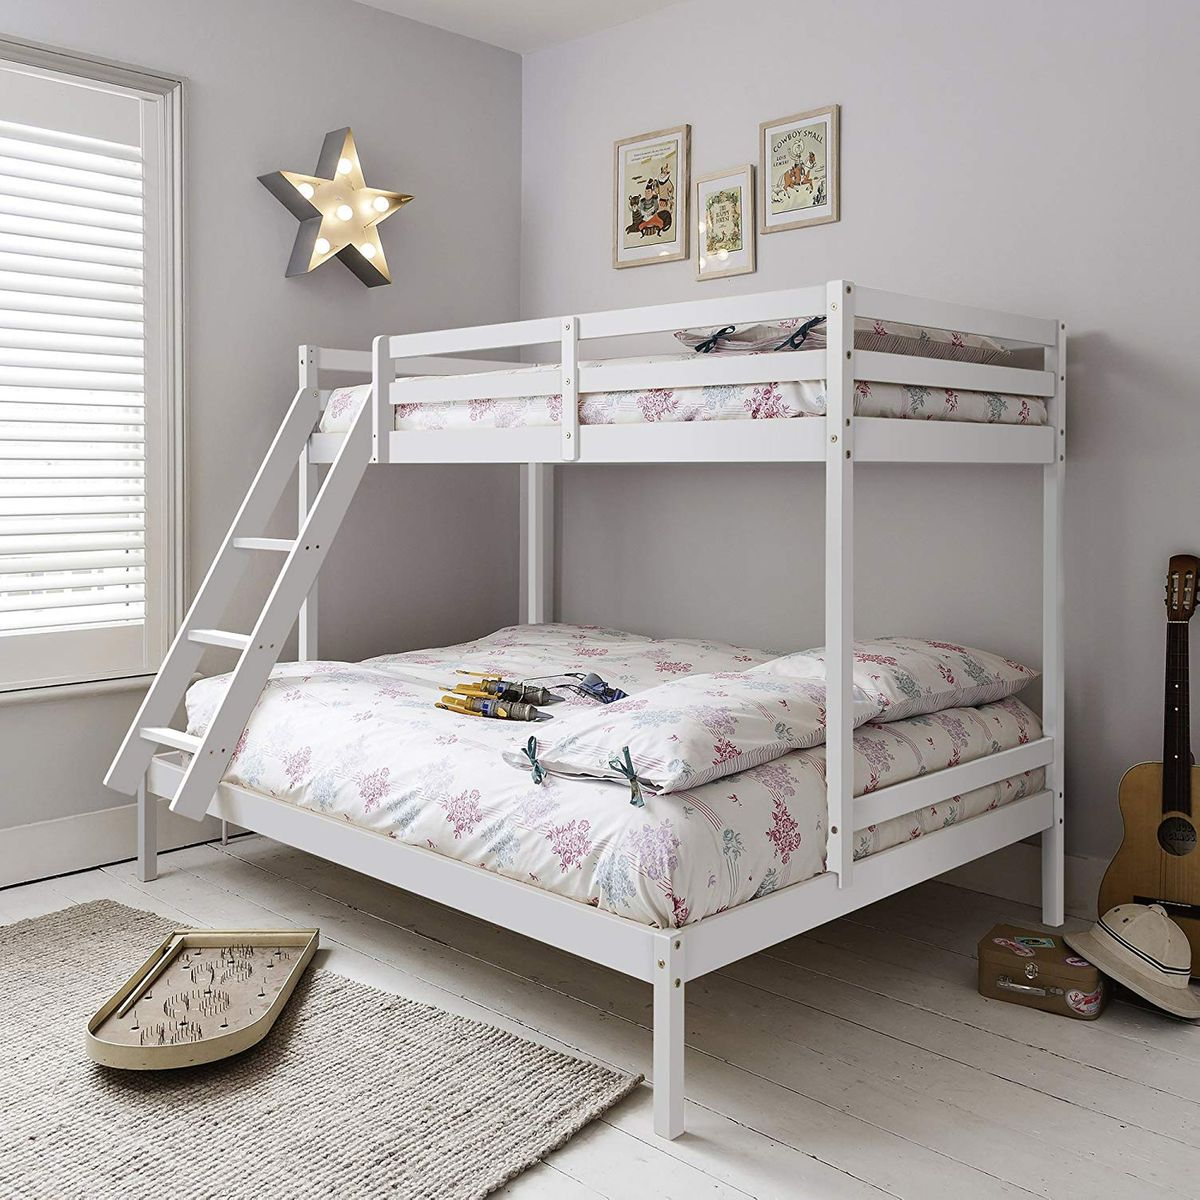 Picture of: The Best Bunk Beds On Amazon According To Reviewers The Strategist New York Magazine